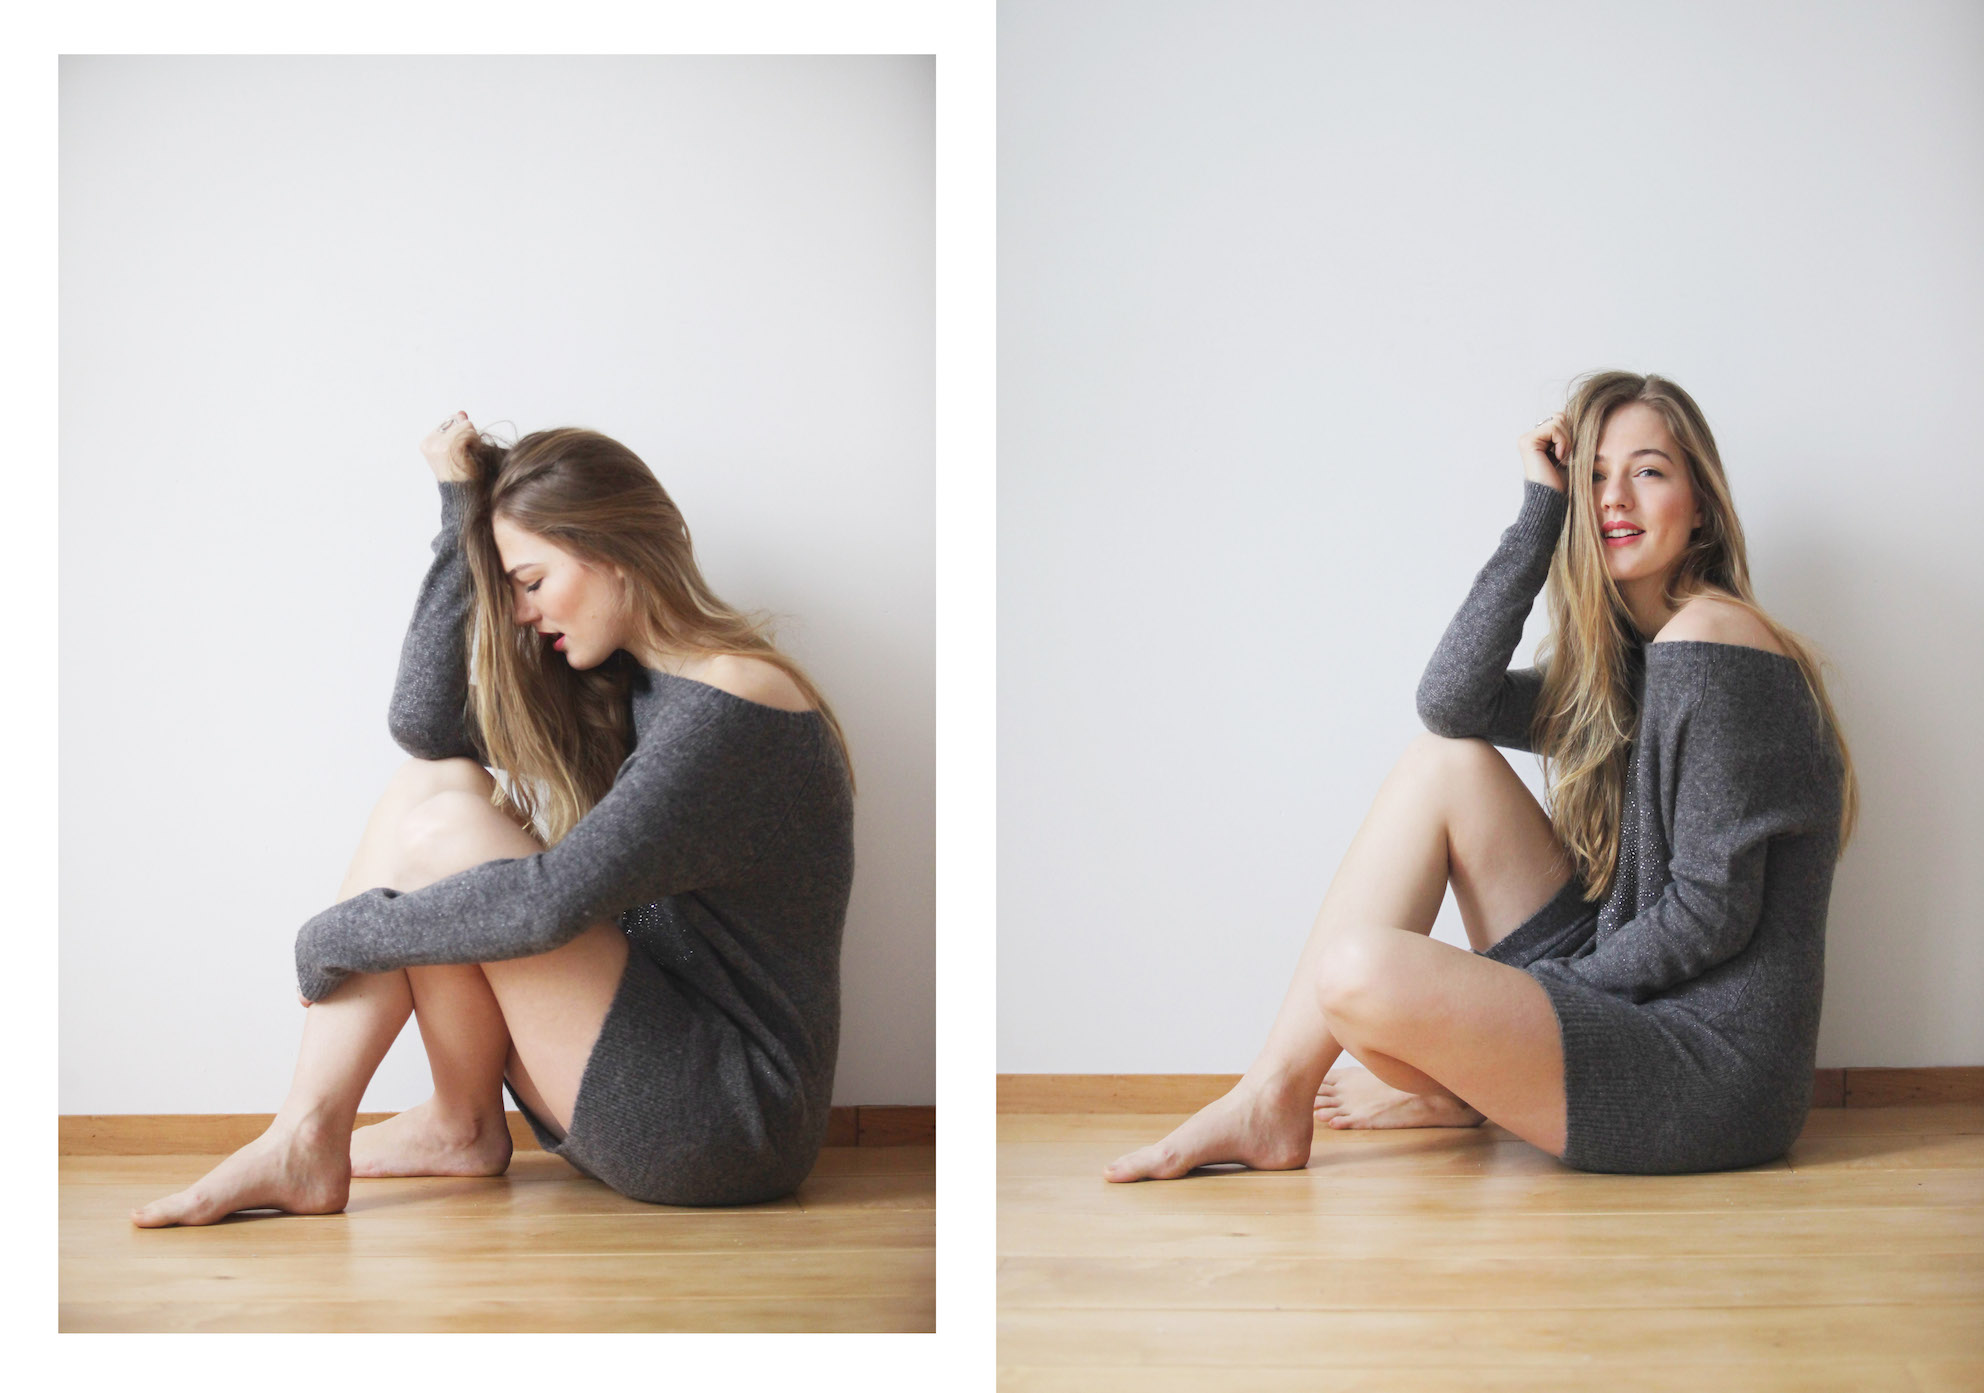 floortjeloves, plan78, plan78 photography, photography, smile, pure, natural, model, modeling, work, cashmere, repeat cashmere, beyu